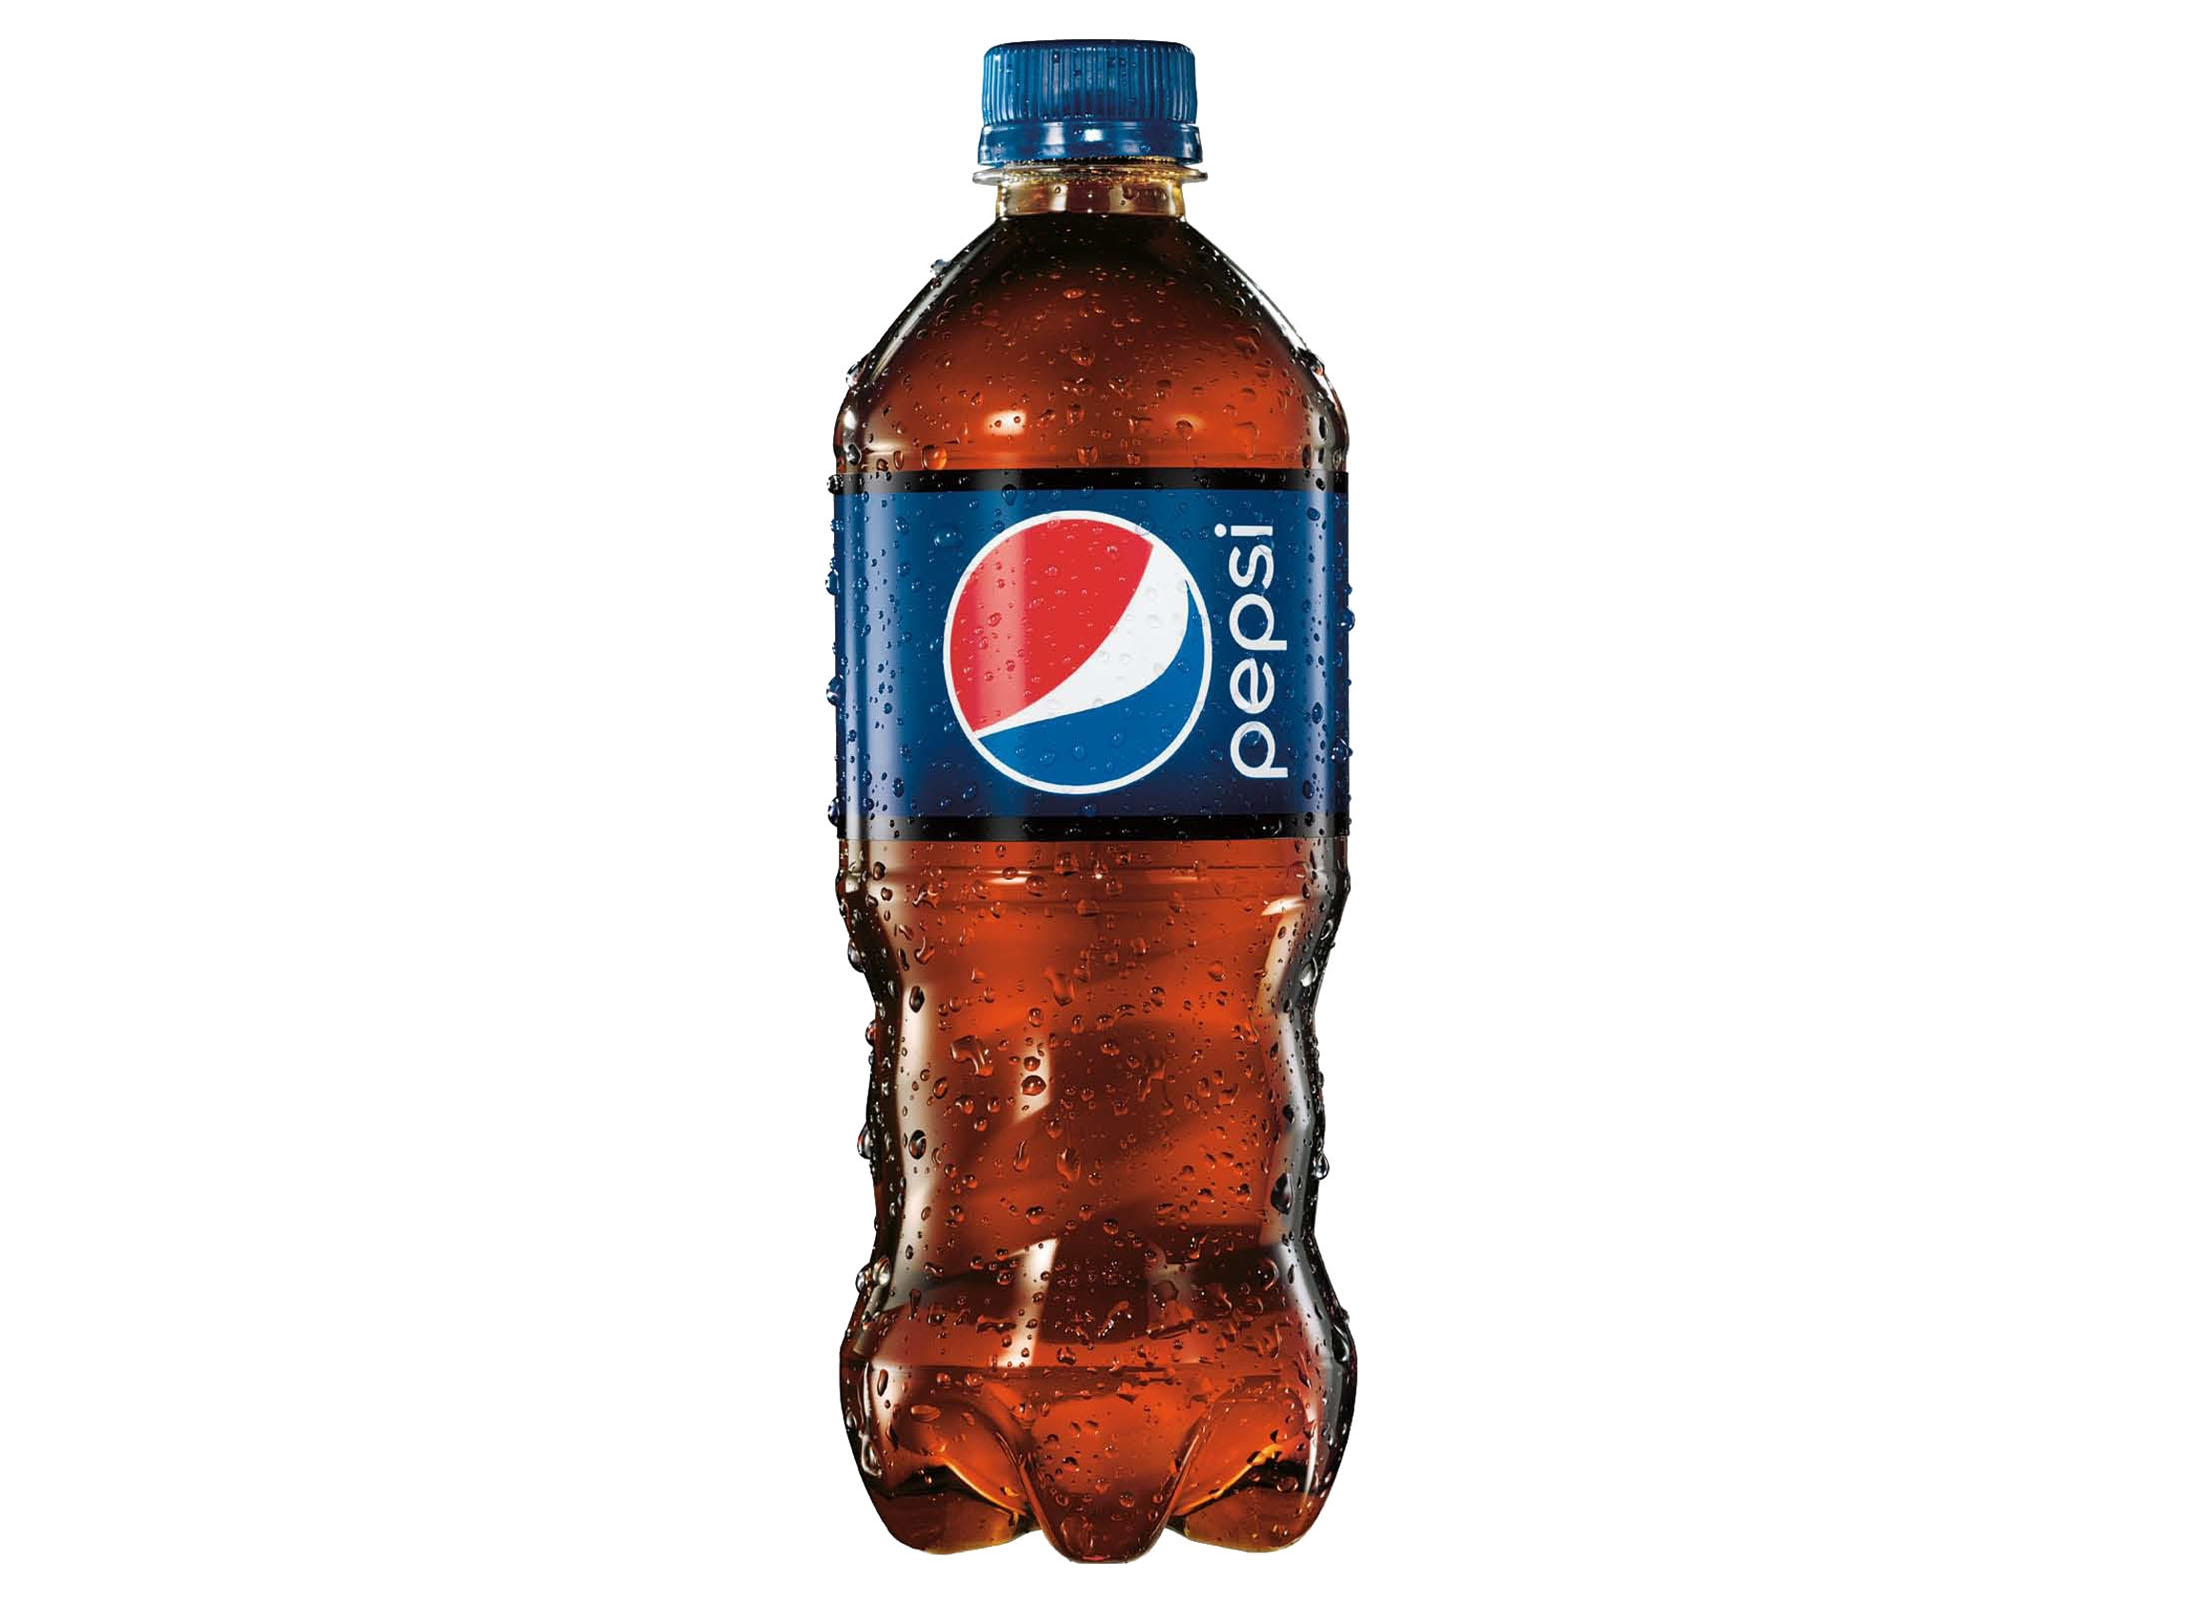 pepsico rolls out new shape for bottle the blade